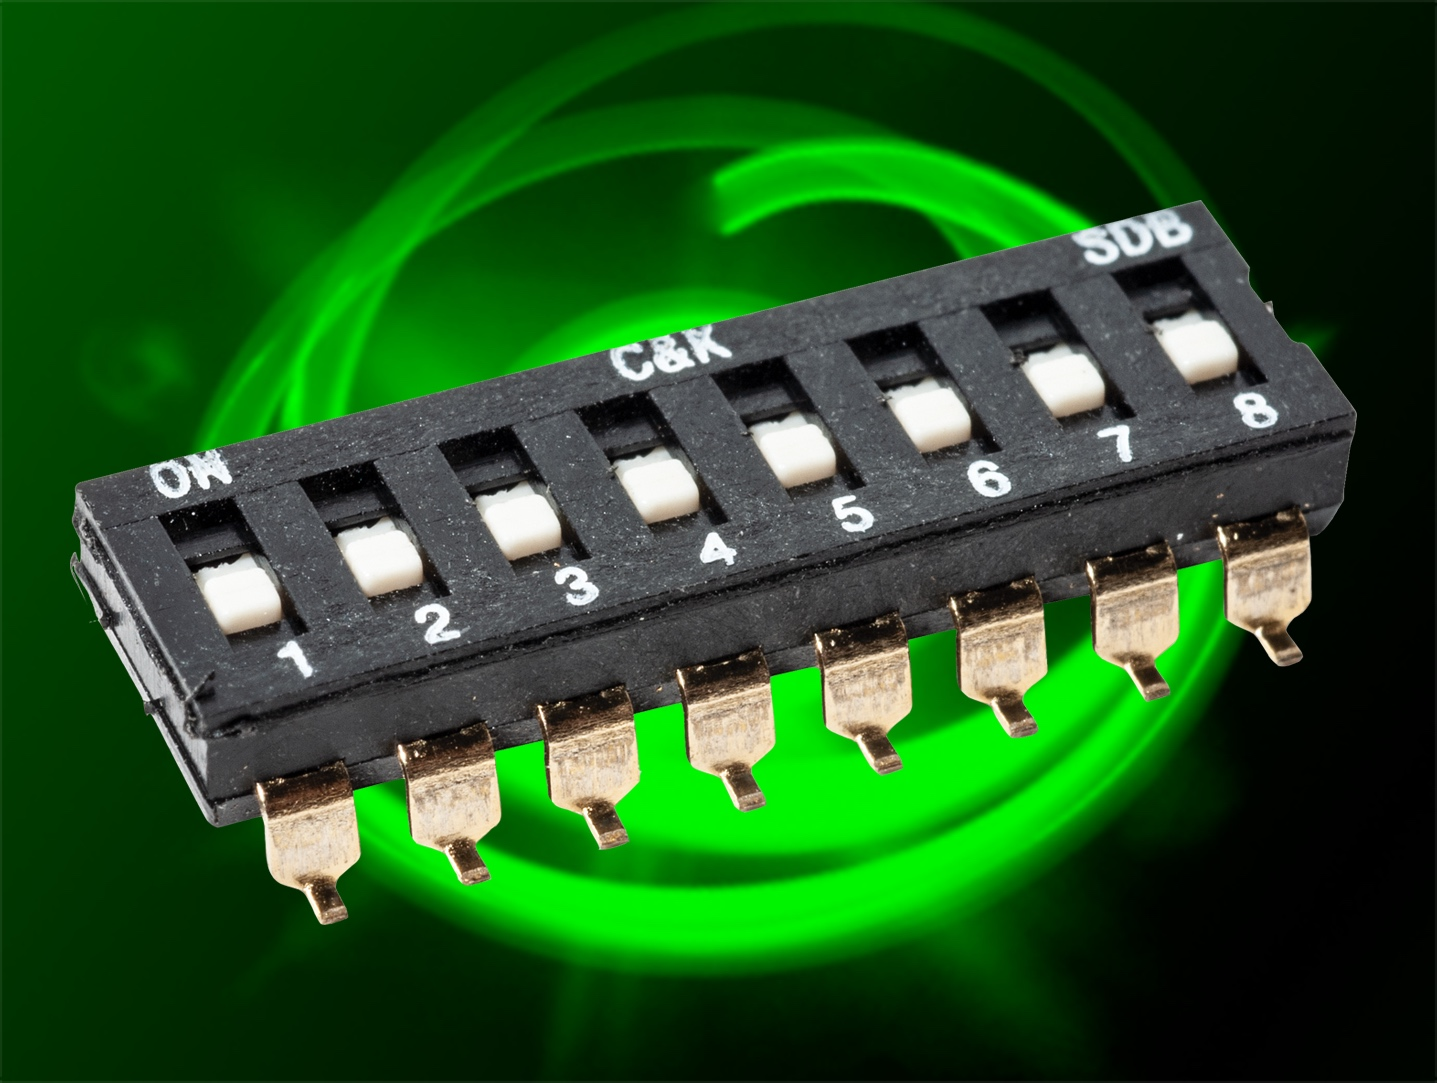 DIP switch provides low-cost option for logic and control application